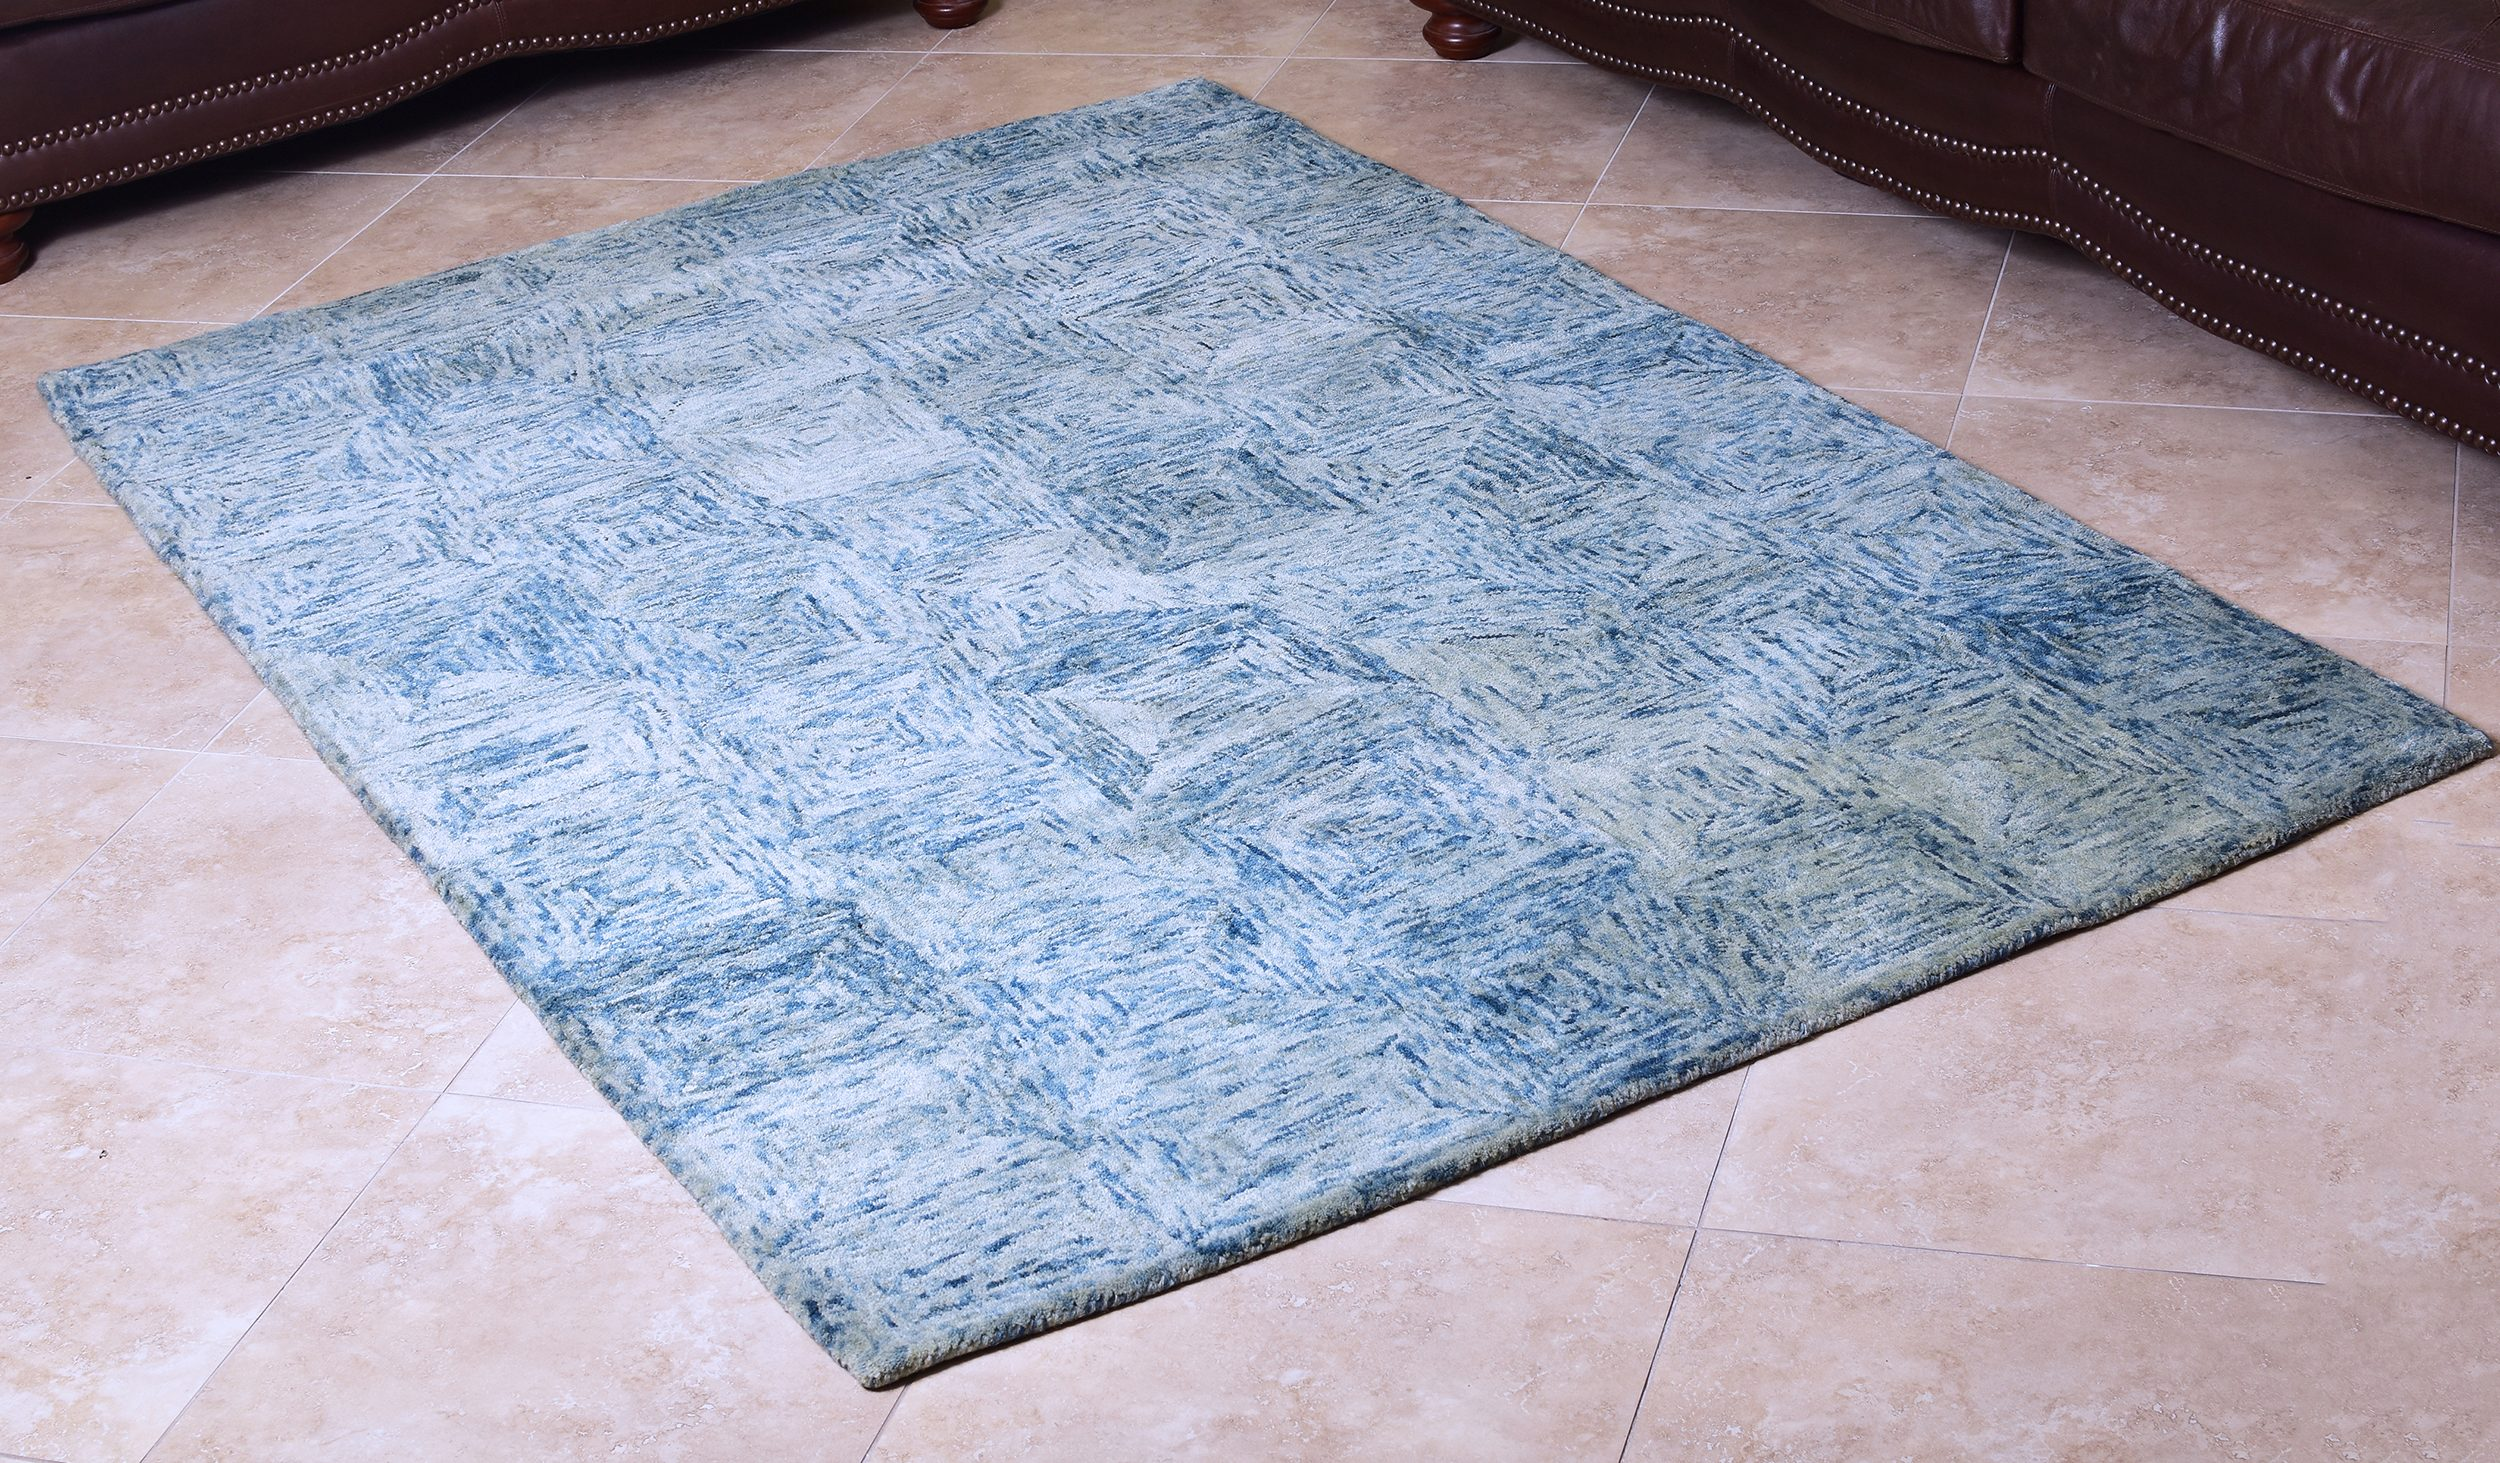 Teal Blue Woolen Hand Tufted Abstract Wool Carpet 5x8 Ft Area Rug By Mystiquedecors Bedroom Family Living Dining Room Rugs Walmart Com Walmart Com